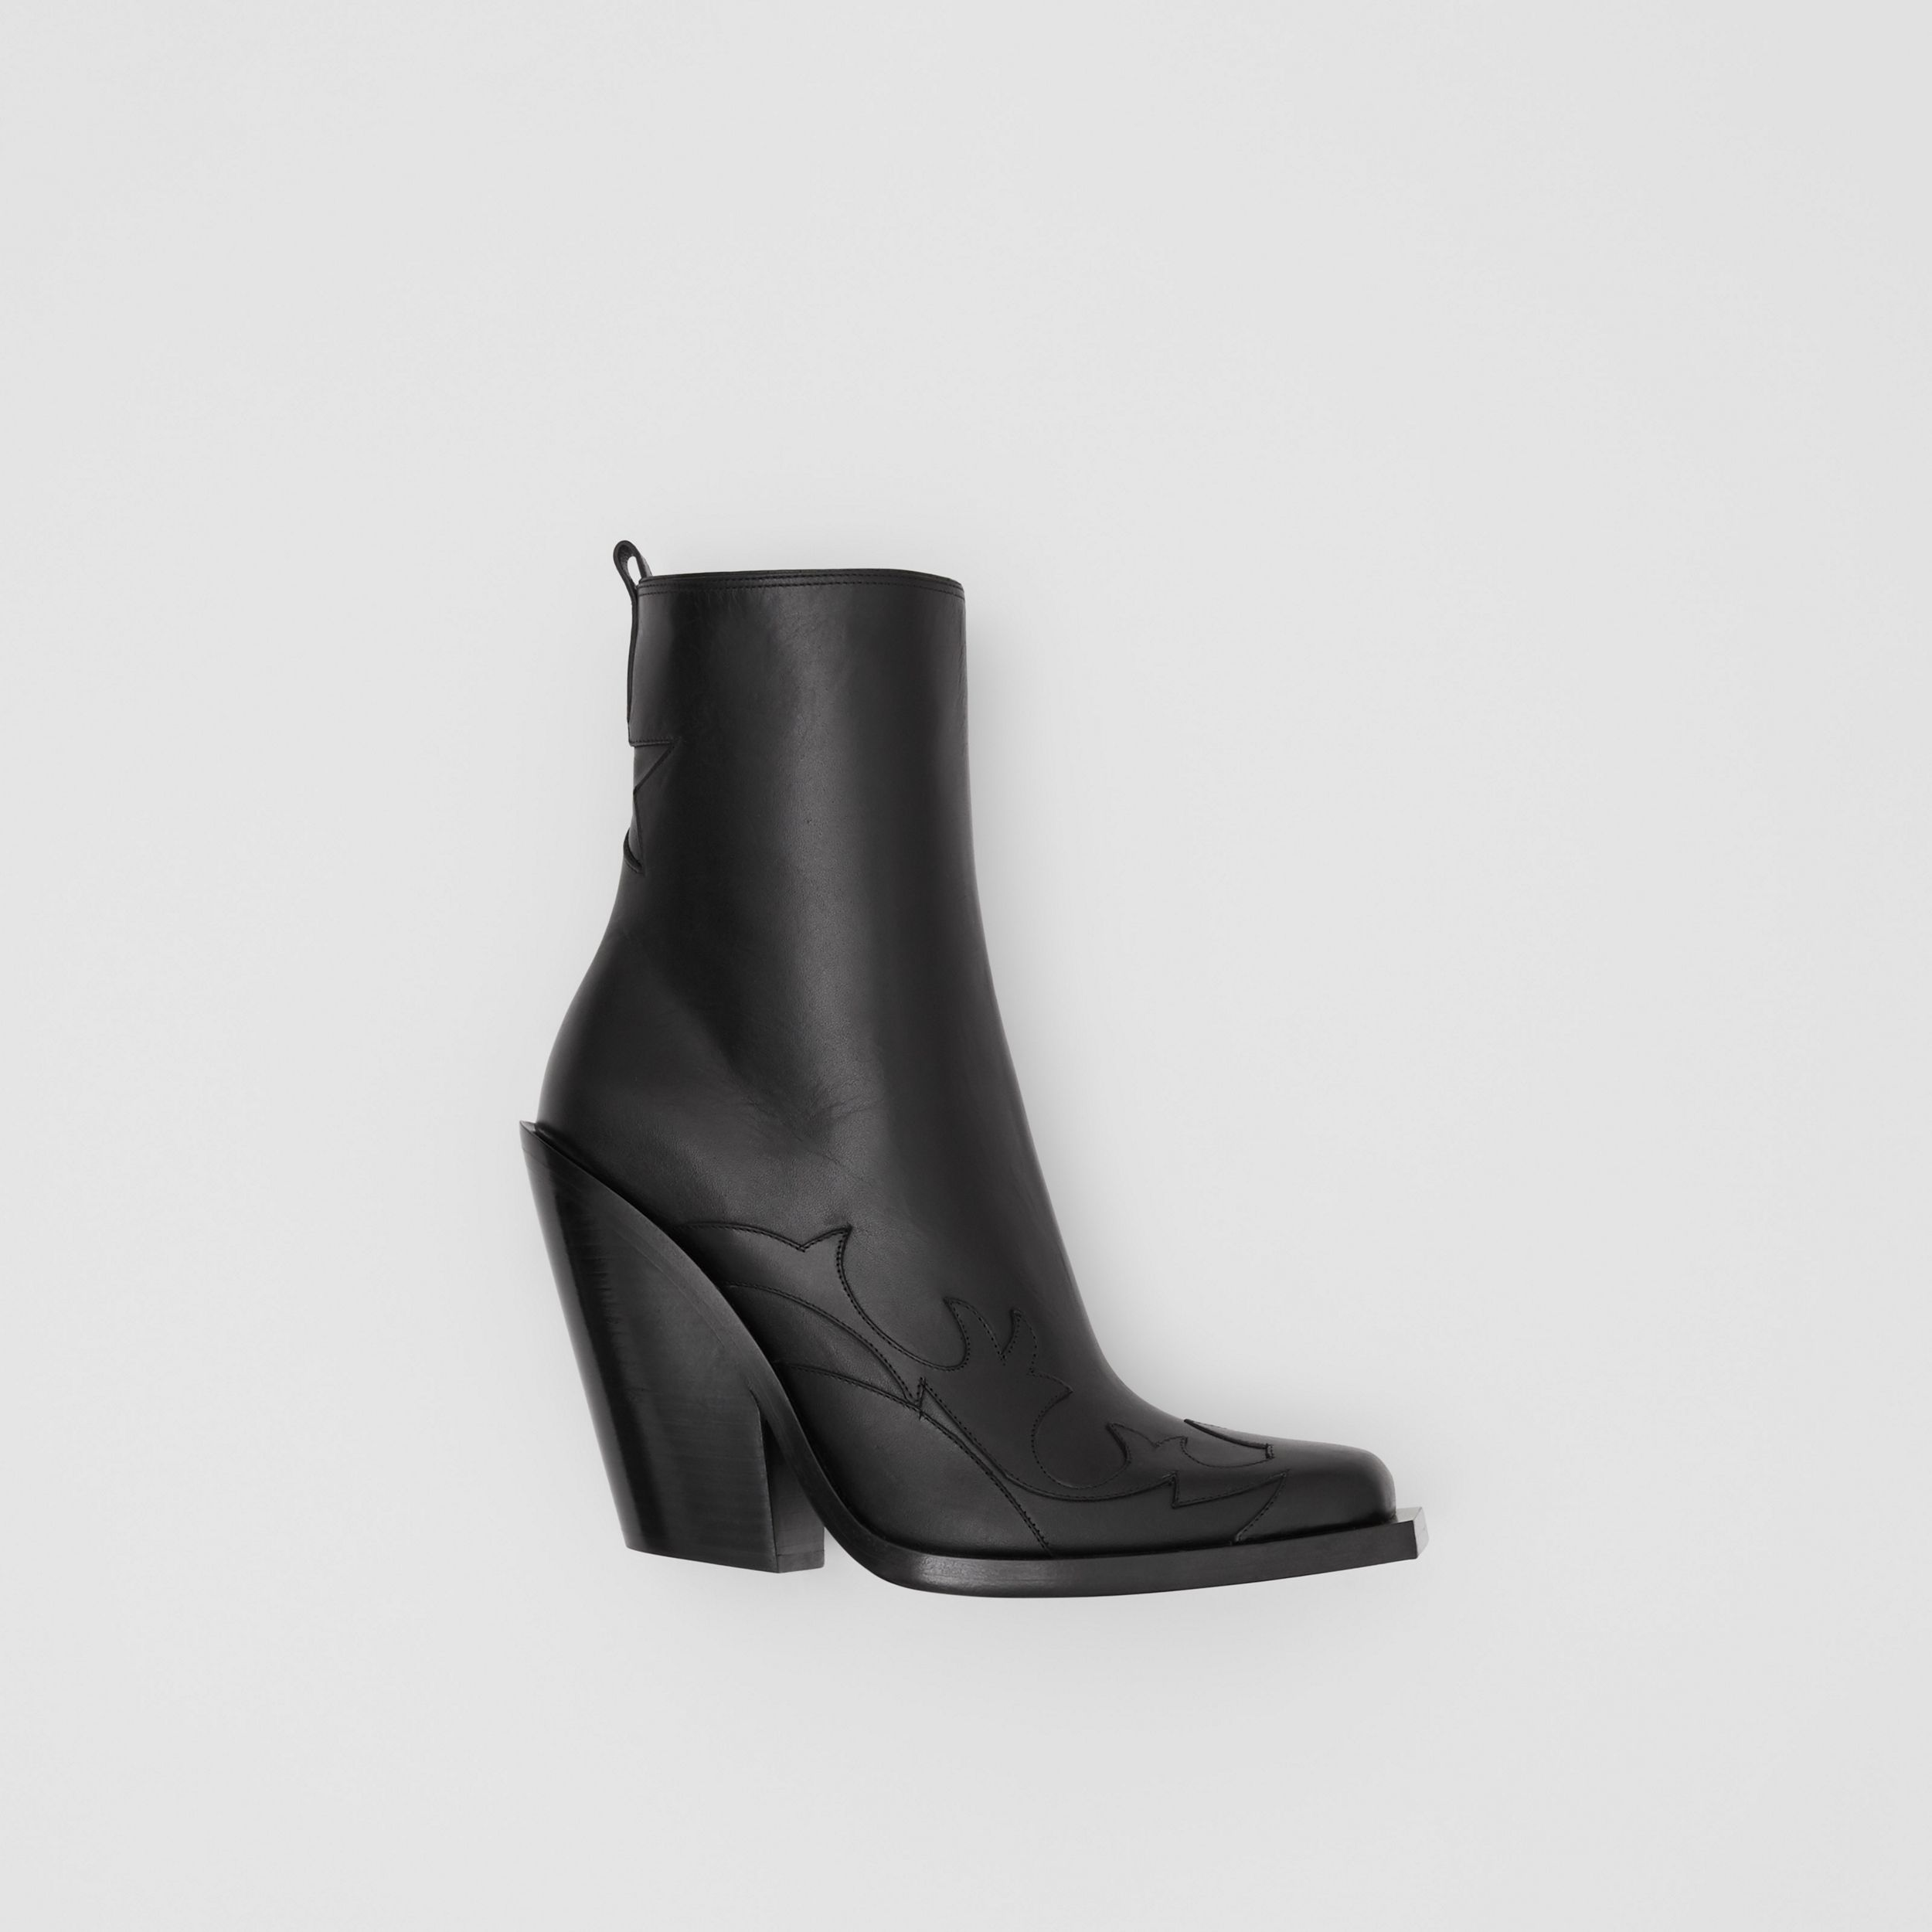 Star Detail Leather Block-heel Ankle Boots in Black - Women | Burberry - 1